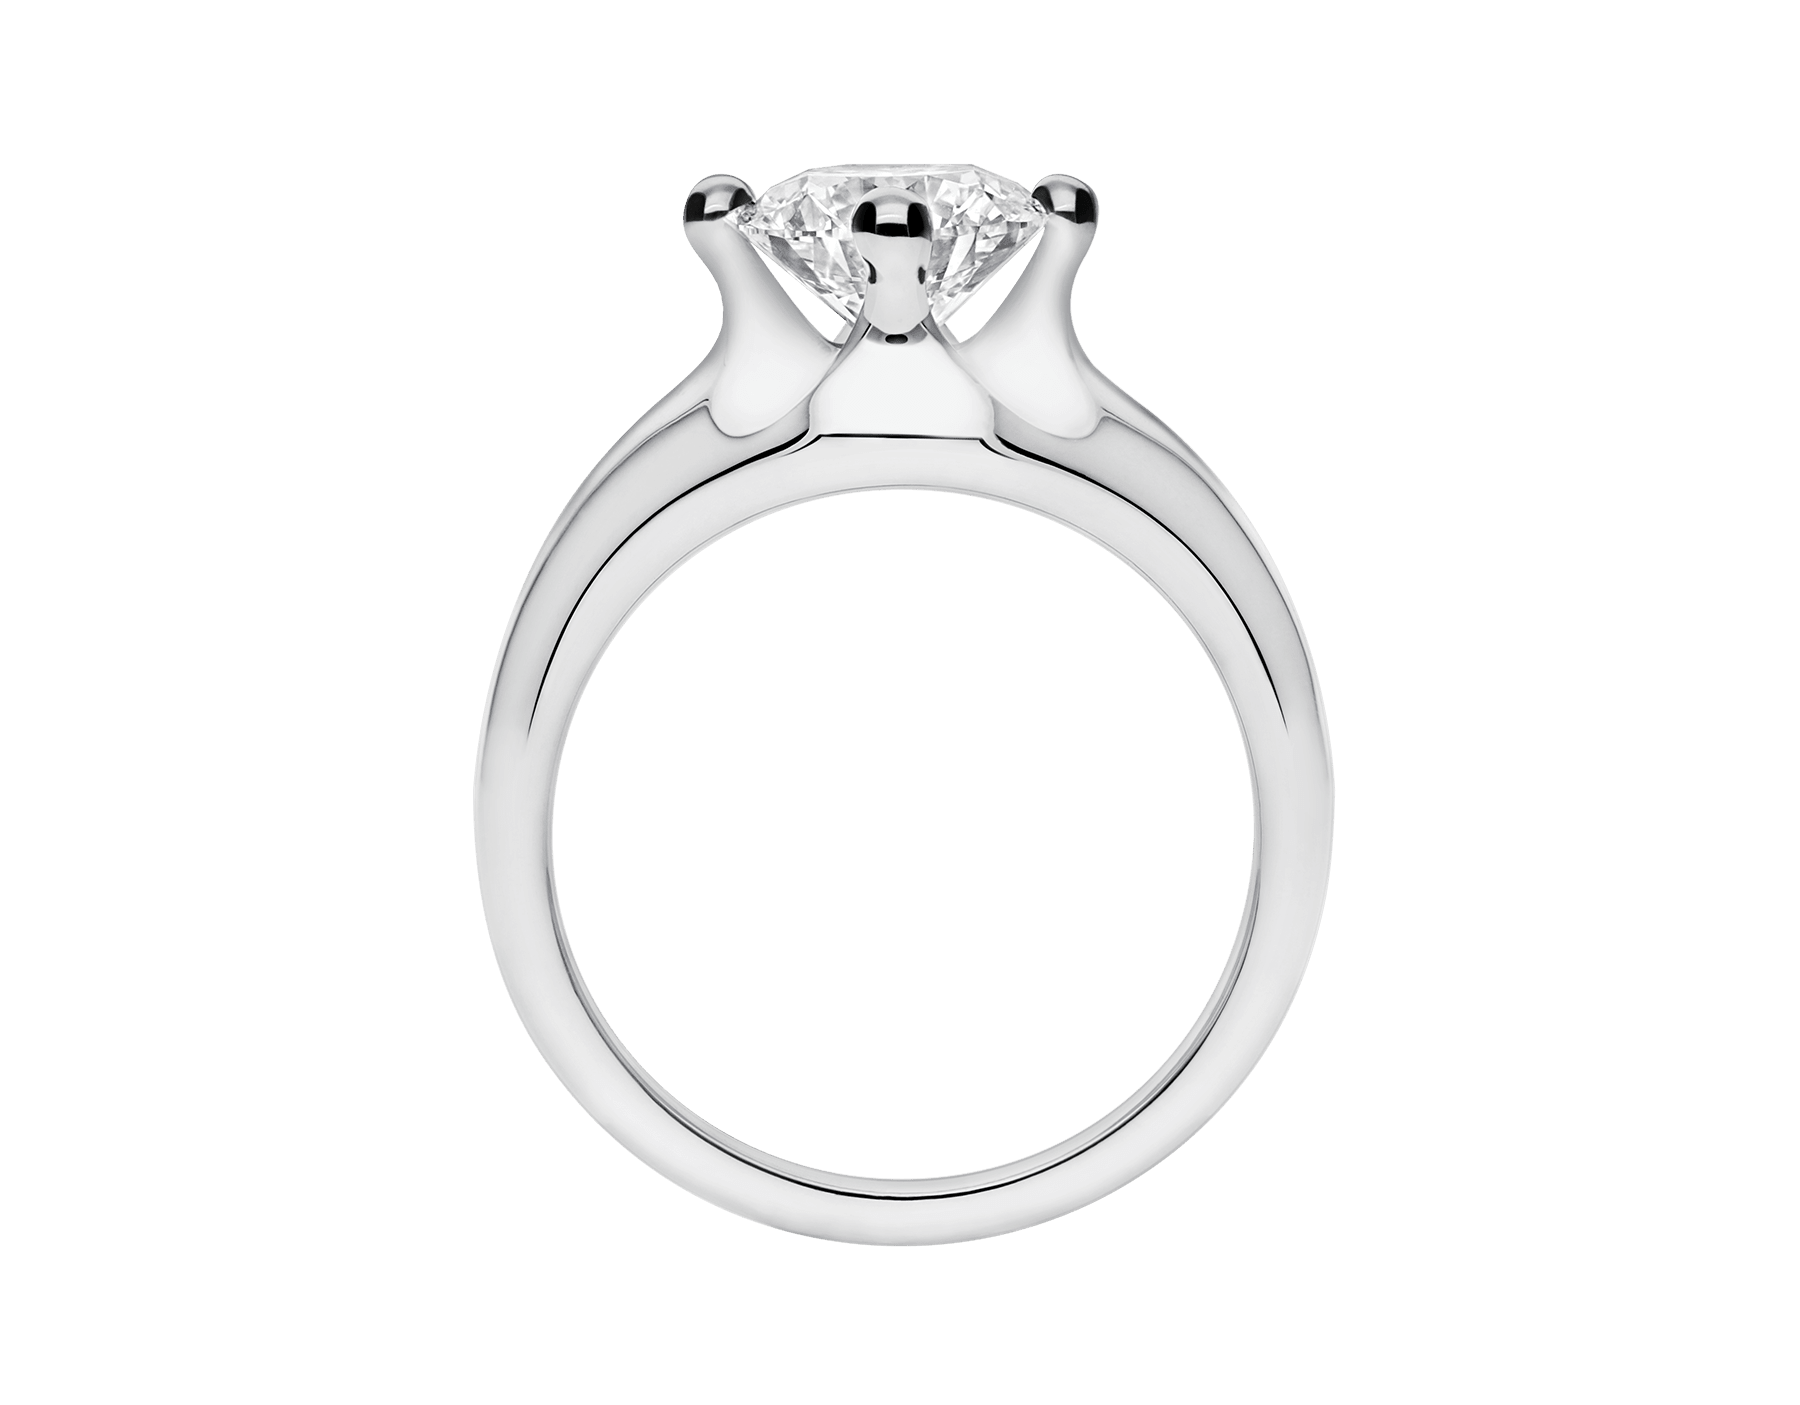 Corona platinum solitaire ring set with a round brilliant cut diamond 323743 image 4